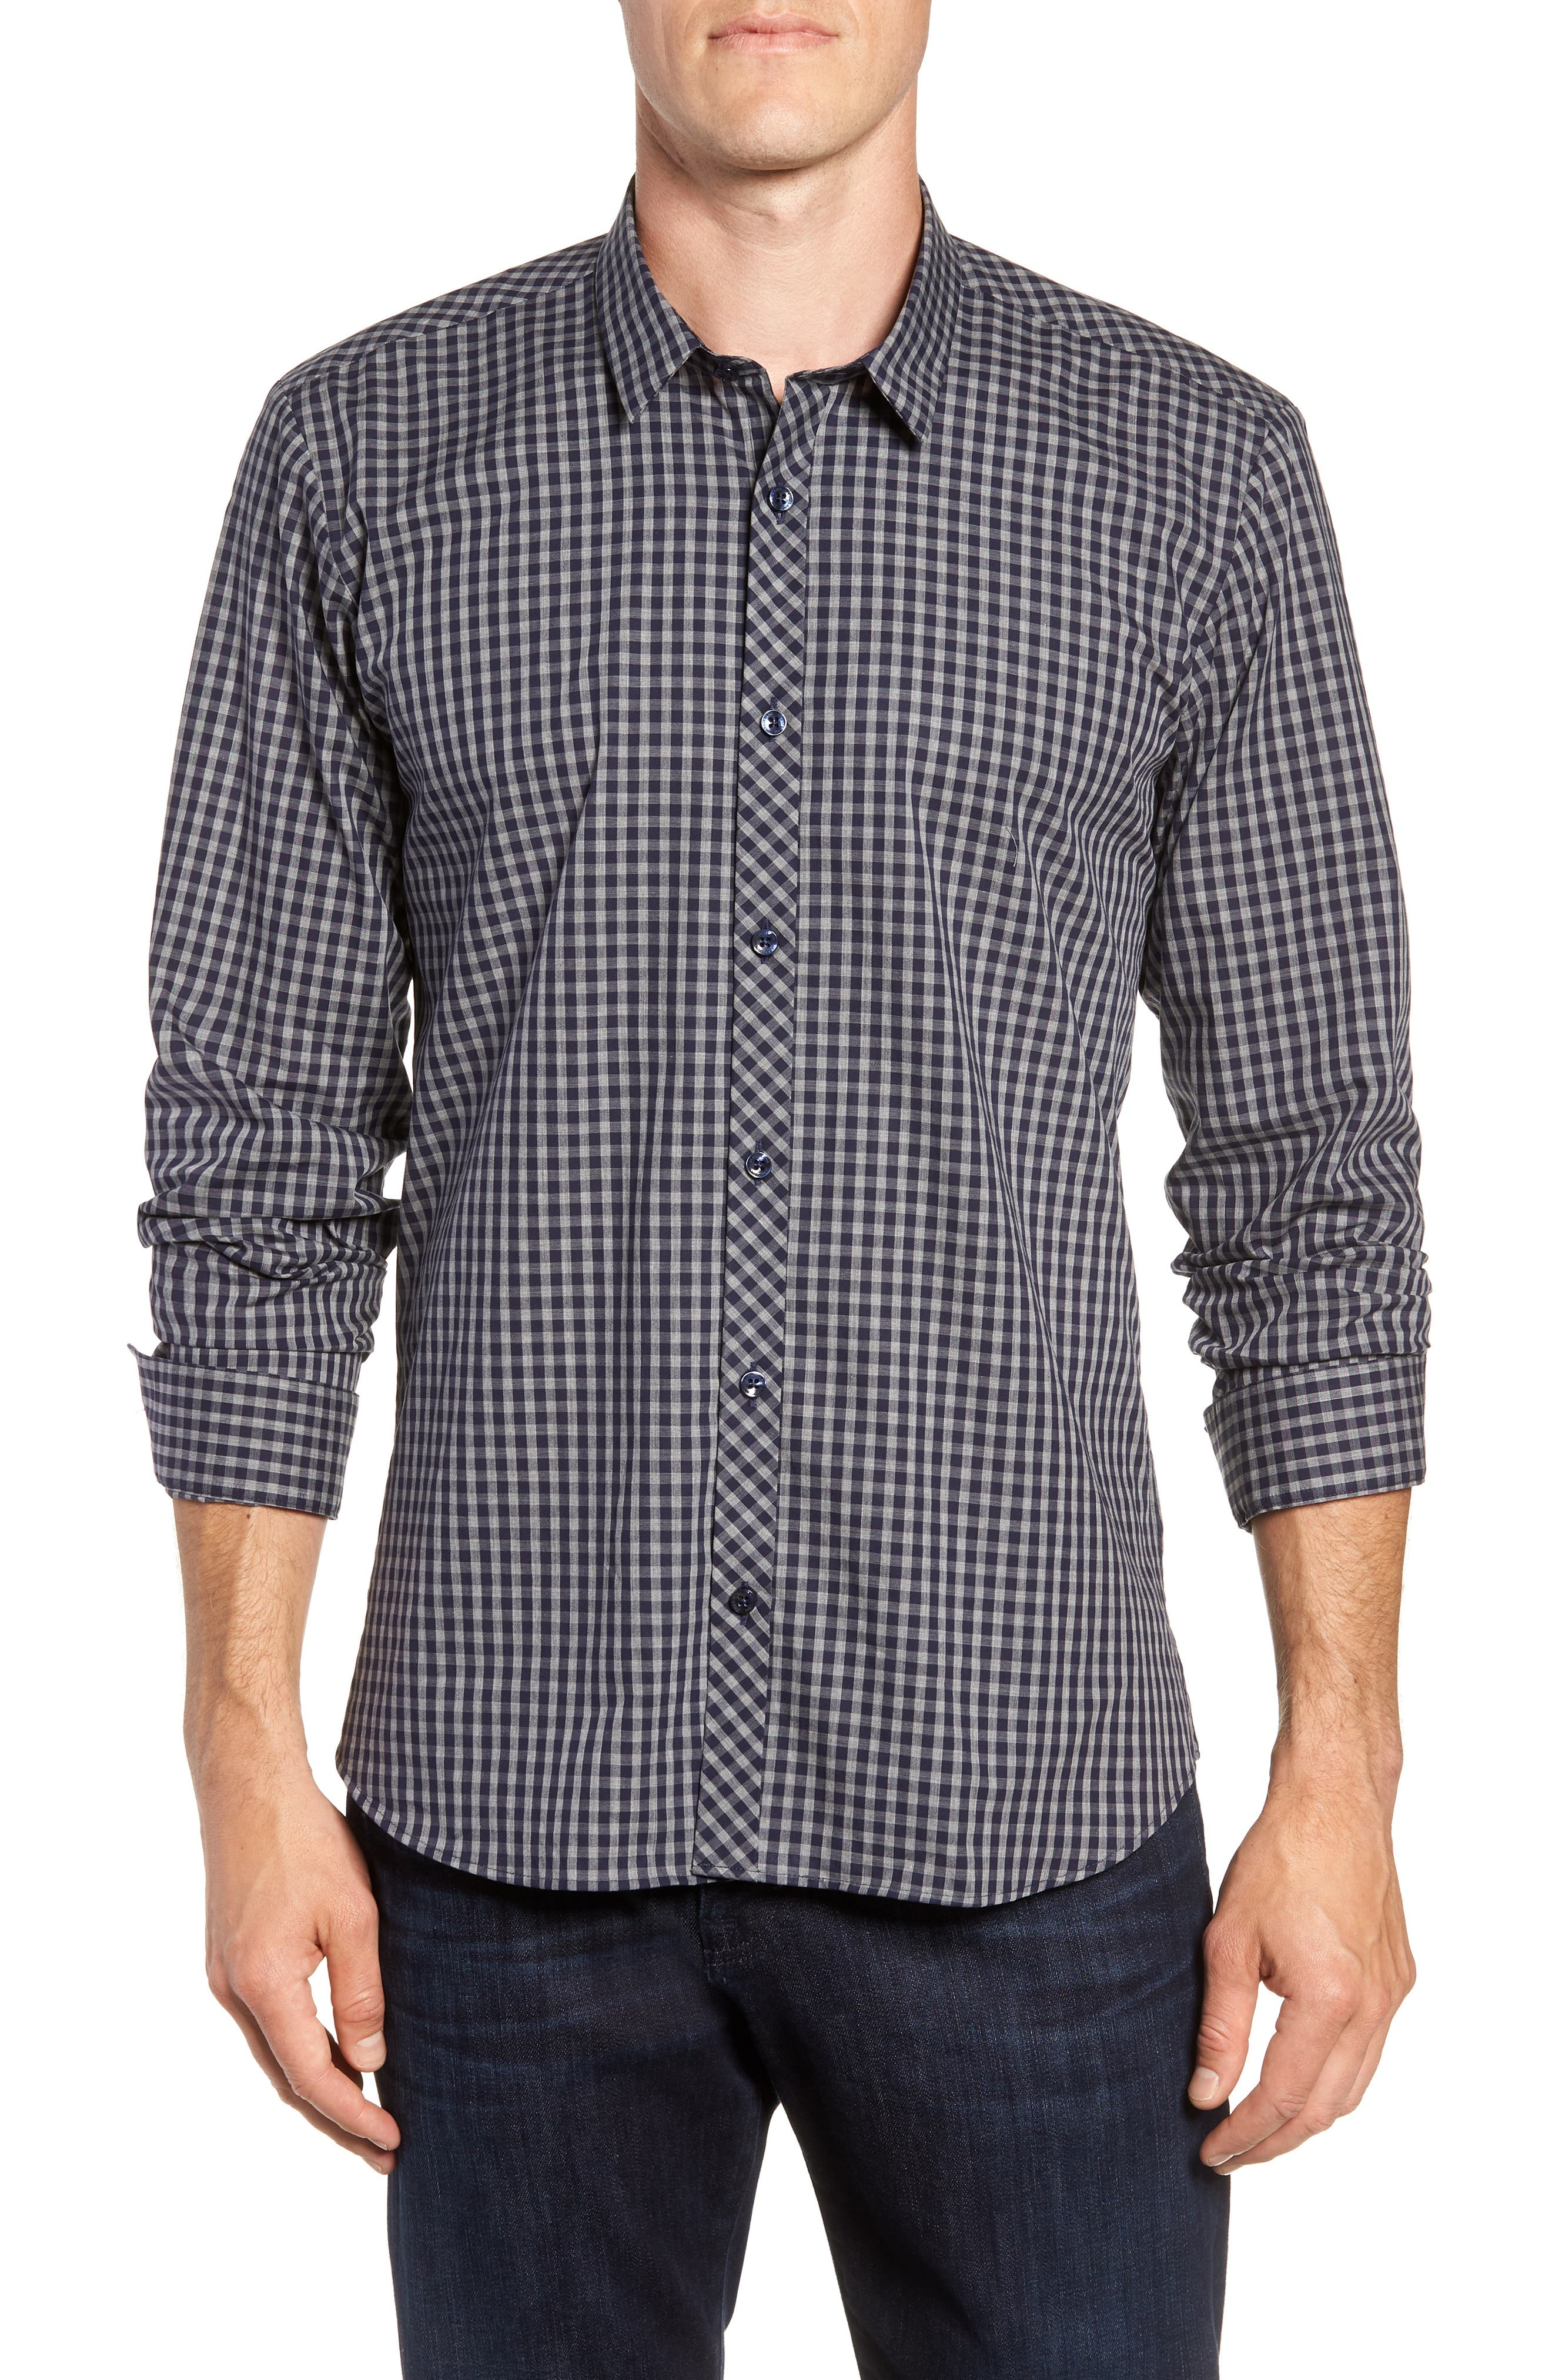 Trim Fit Sport Shirt,                         Main,                         color, Navy Grey Check